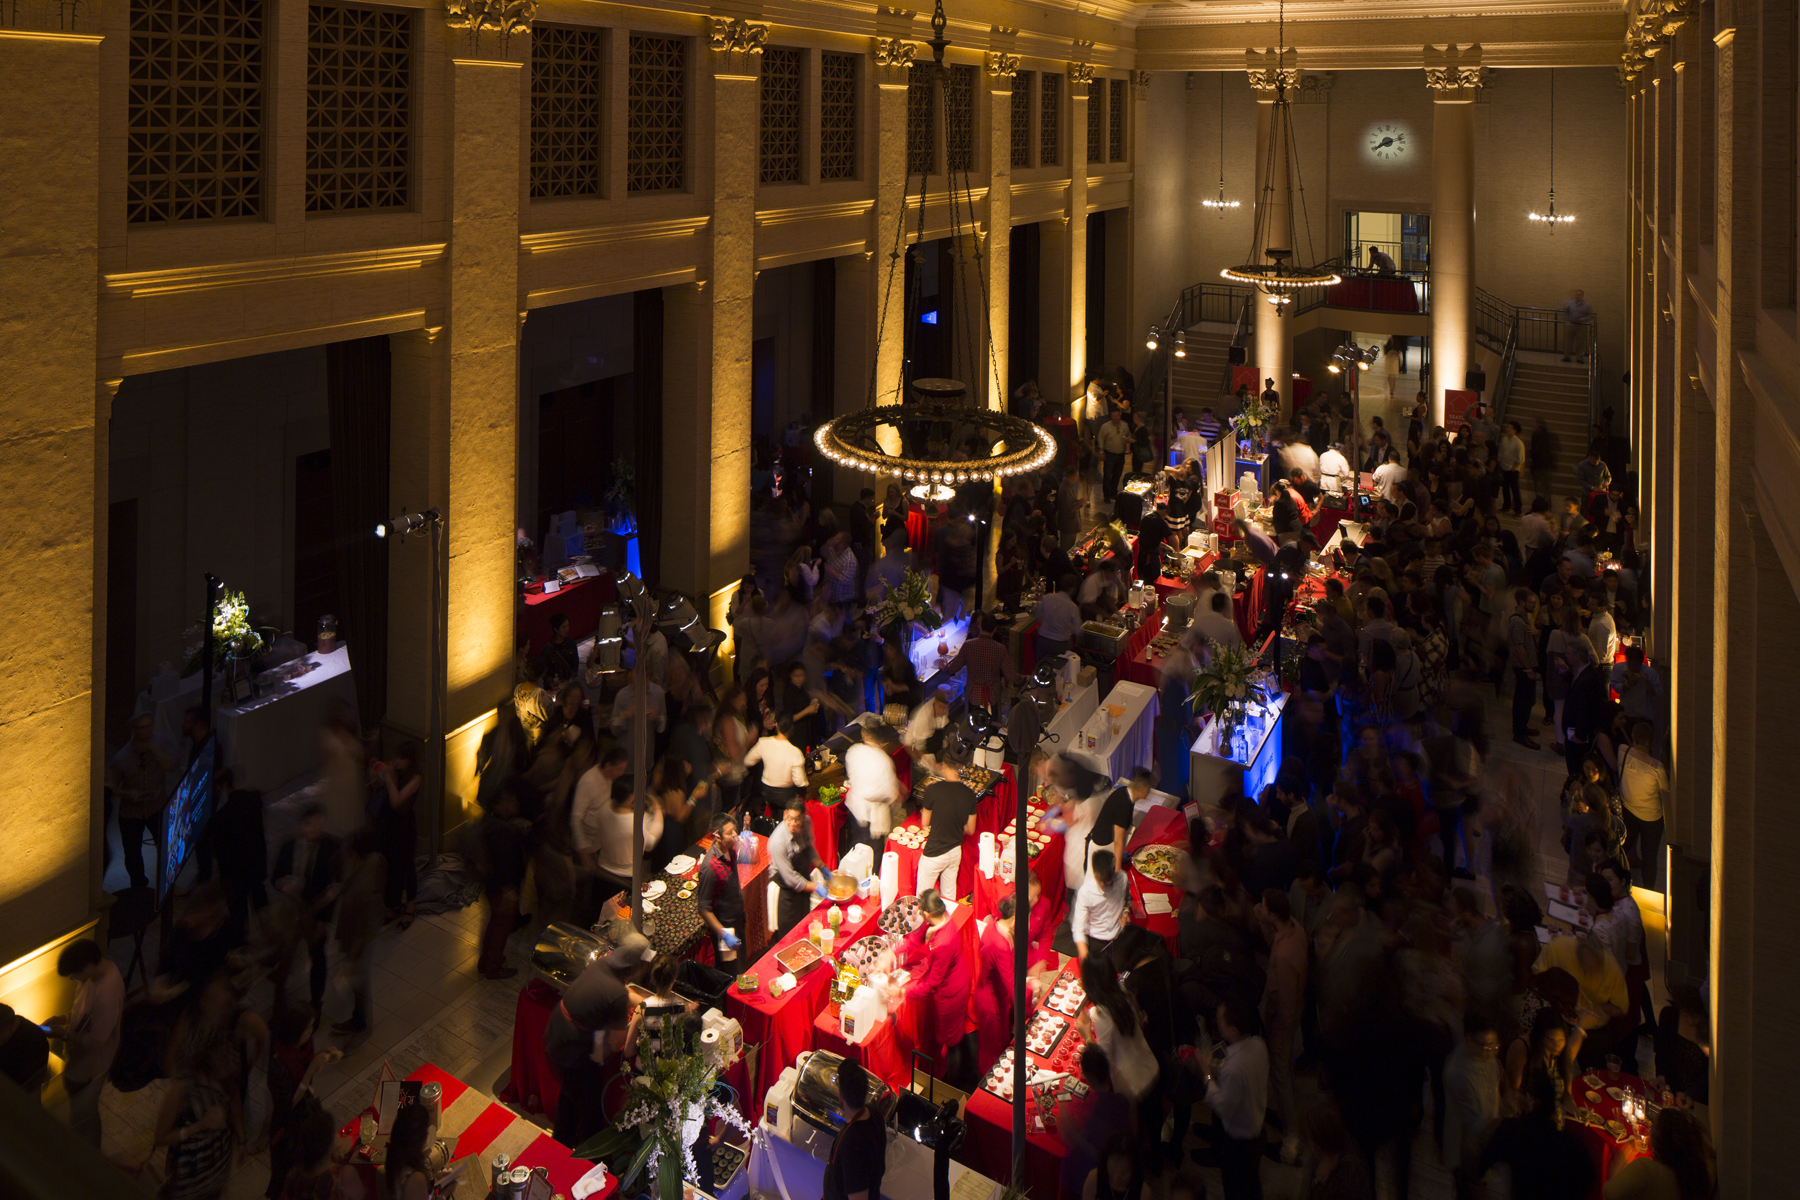 LuckyRice San Francisco Feast takes place at the Bently Reserve this Friday night.